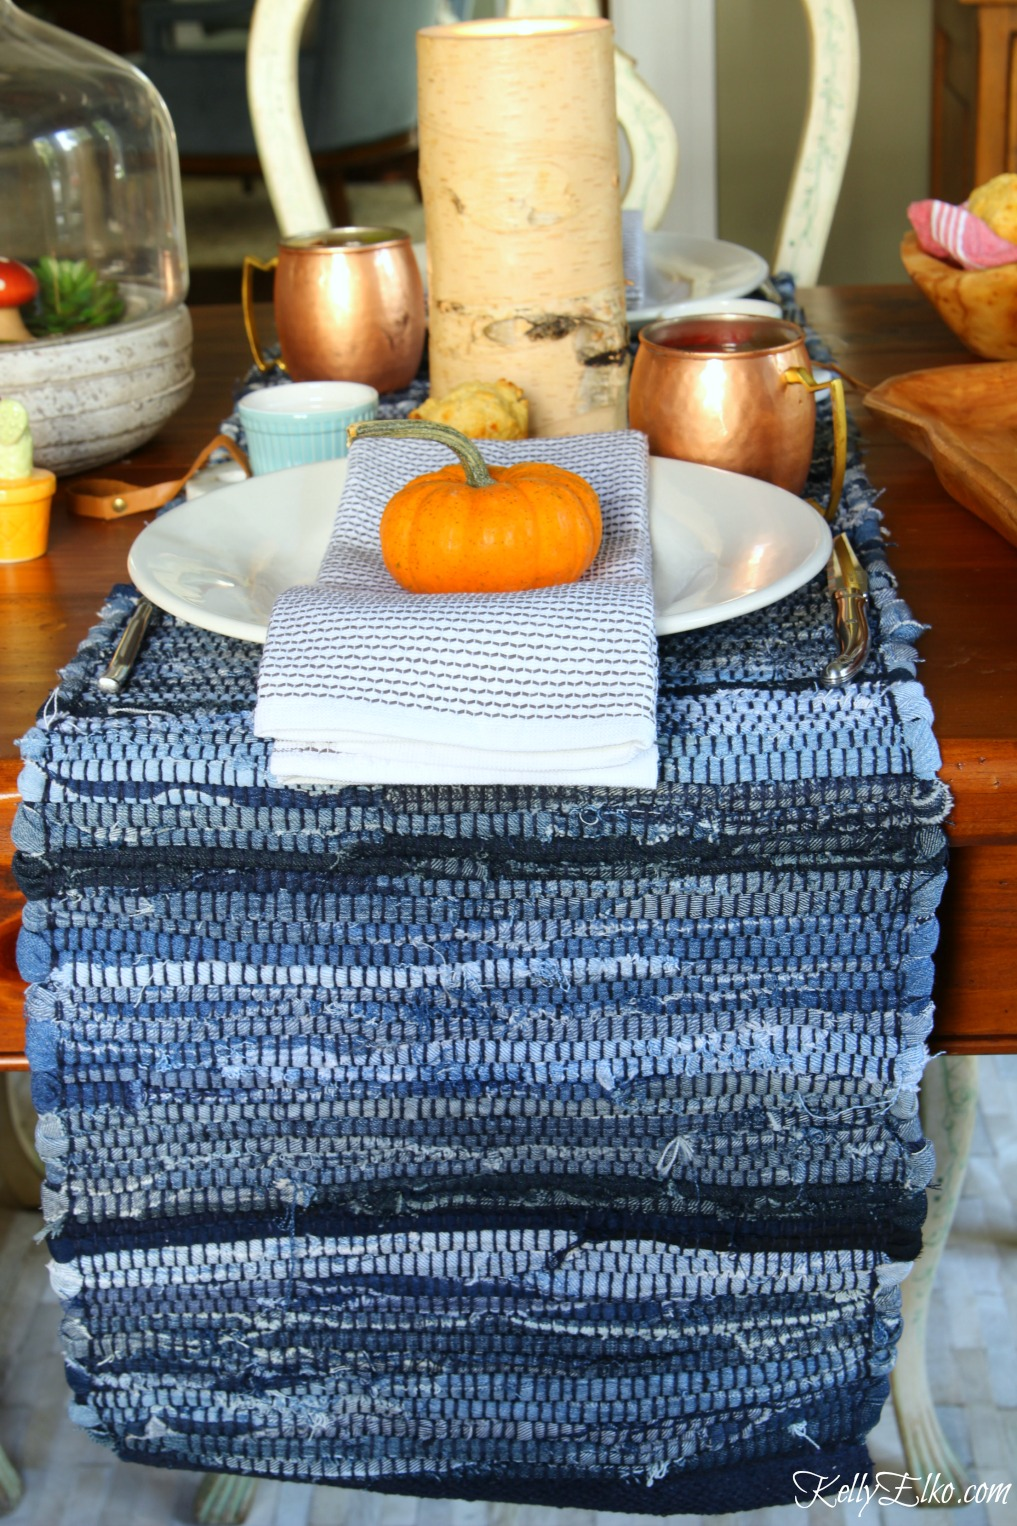 Love the texture of this nubby blue table setting for fall kellyelko.com